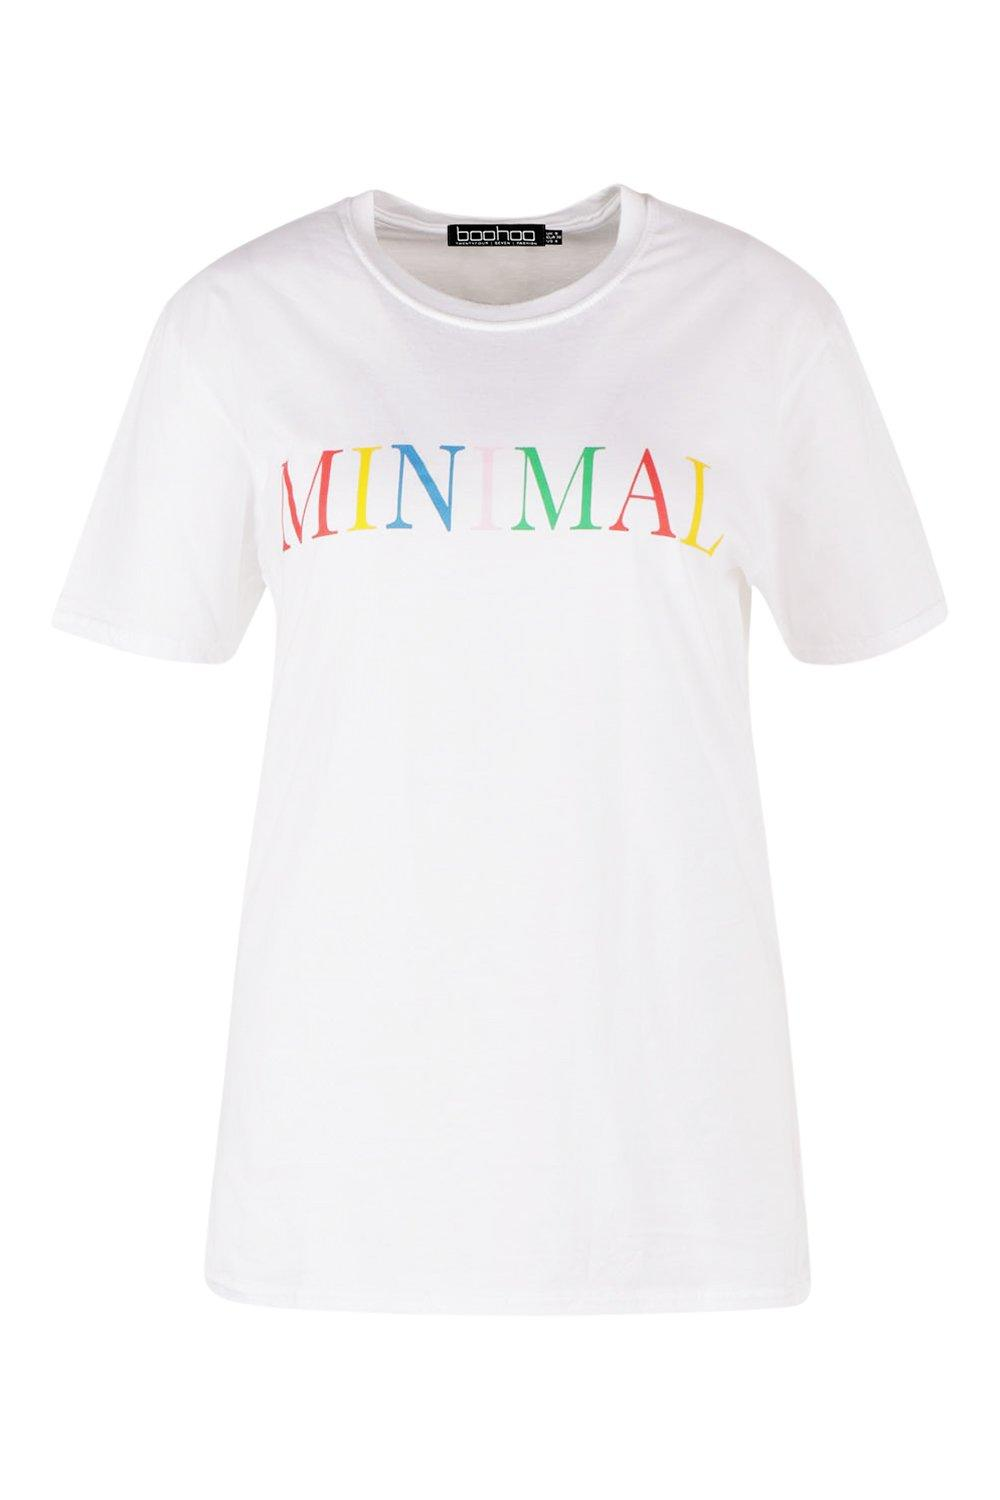 white Slogan 'Minimal' Shirt Plus T qI506wH